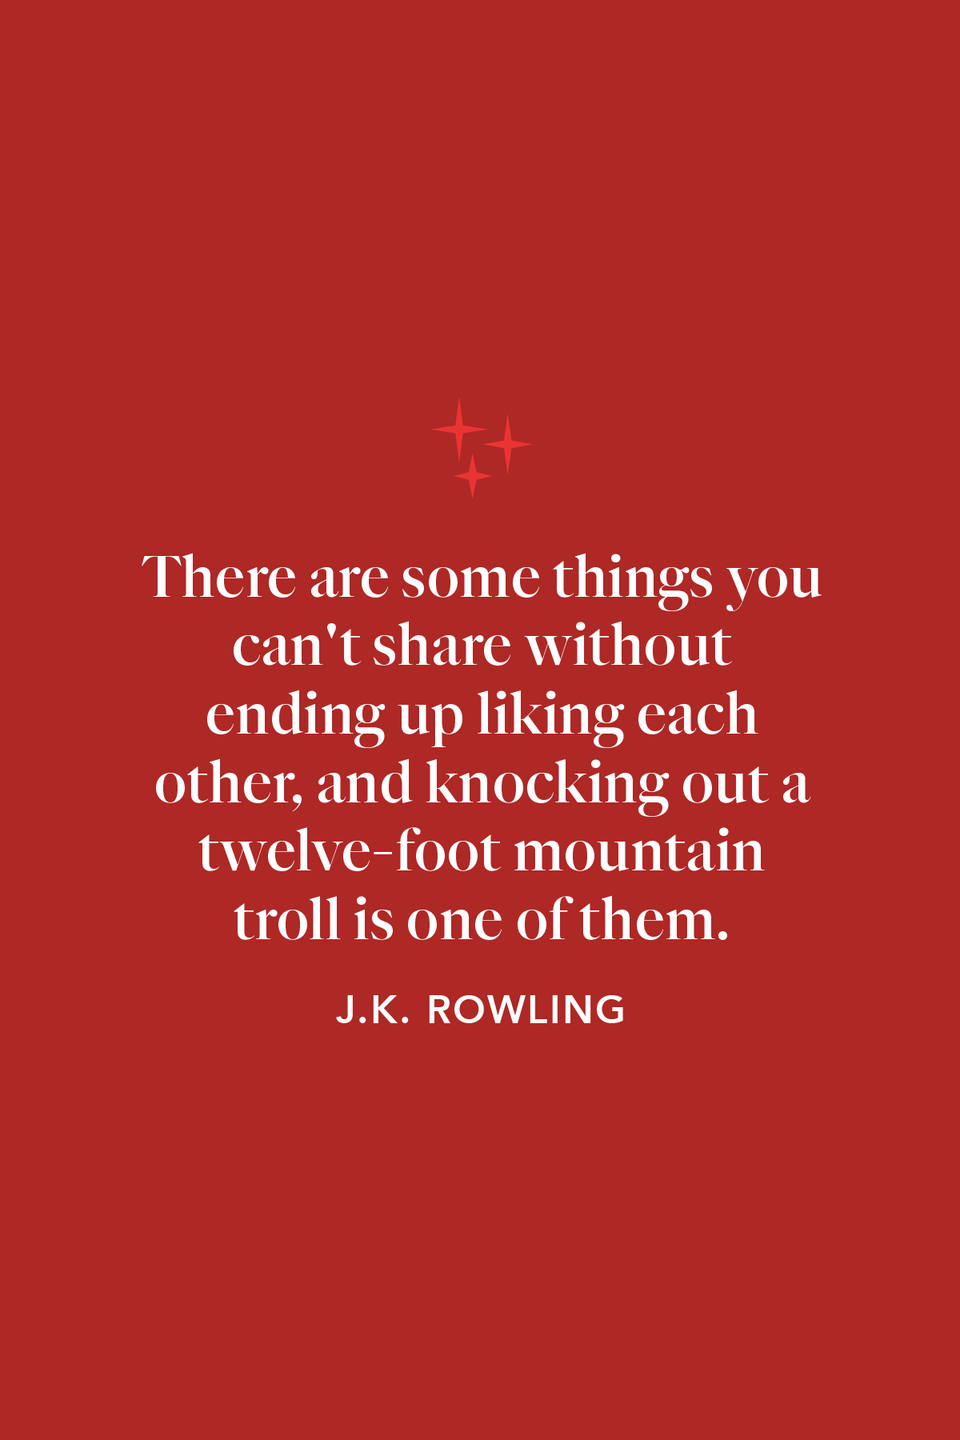 """<p>In <em>The</em> <em>Sorcerer's Stone</em>, Rowling writes of Harry, Ron, and Hermione: """"There are some things you can't share without ending up liking each other, and knocking out a twelve-foot mountain troll is one of them.""""</p>"""